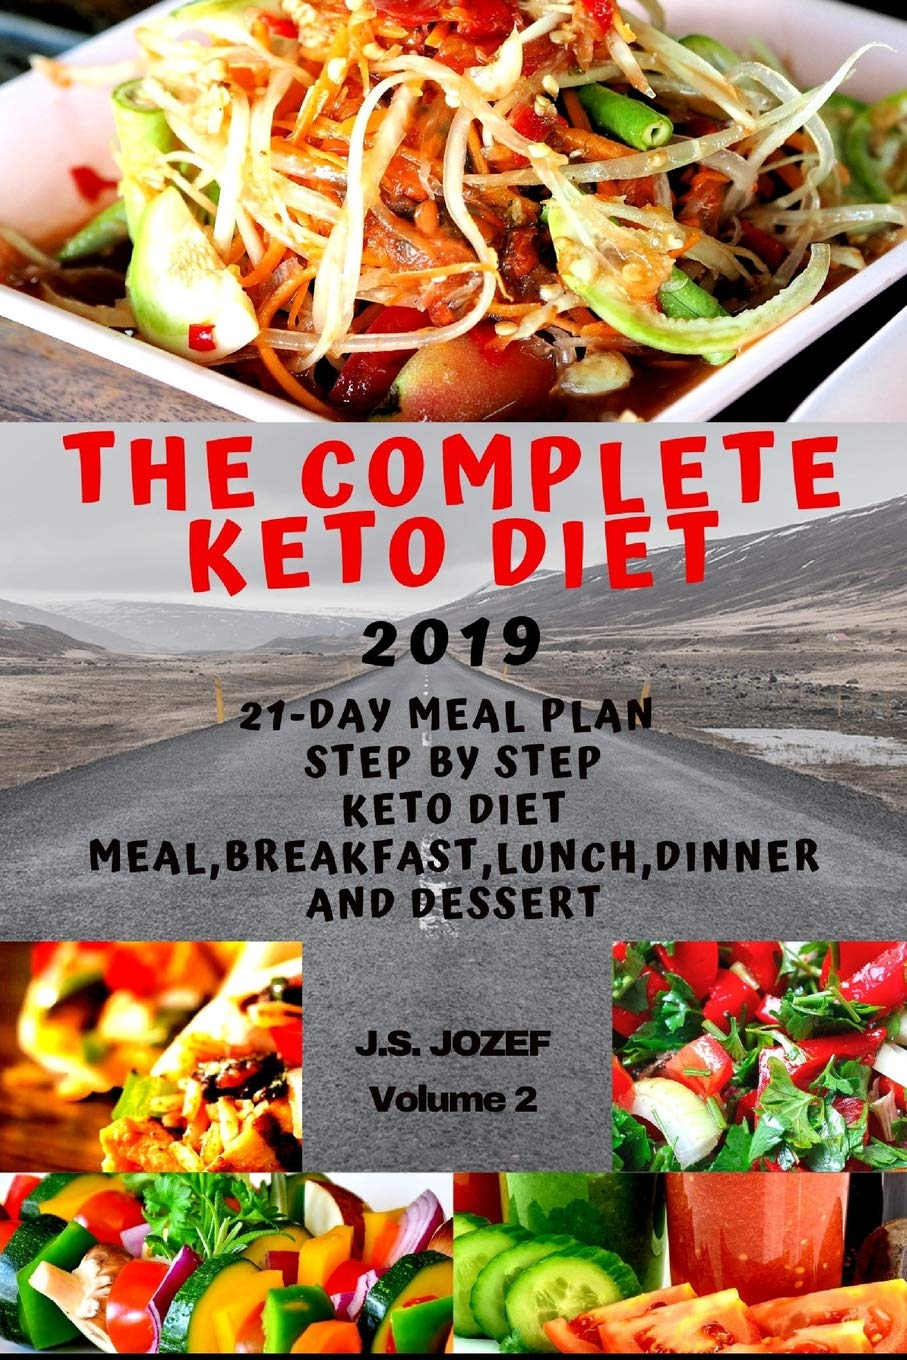 Buy The Complete Keto Diet 2019 21 Day Meal Plan Step By Step Keto Diet Meal Keto Breakfast Keto Lunch Keto Dinner And Keto Dessert Book Online At Low Prices In India